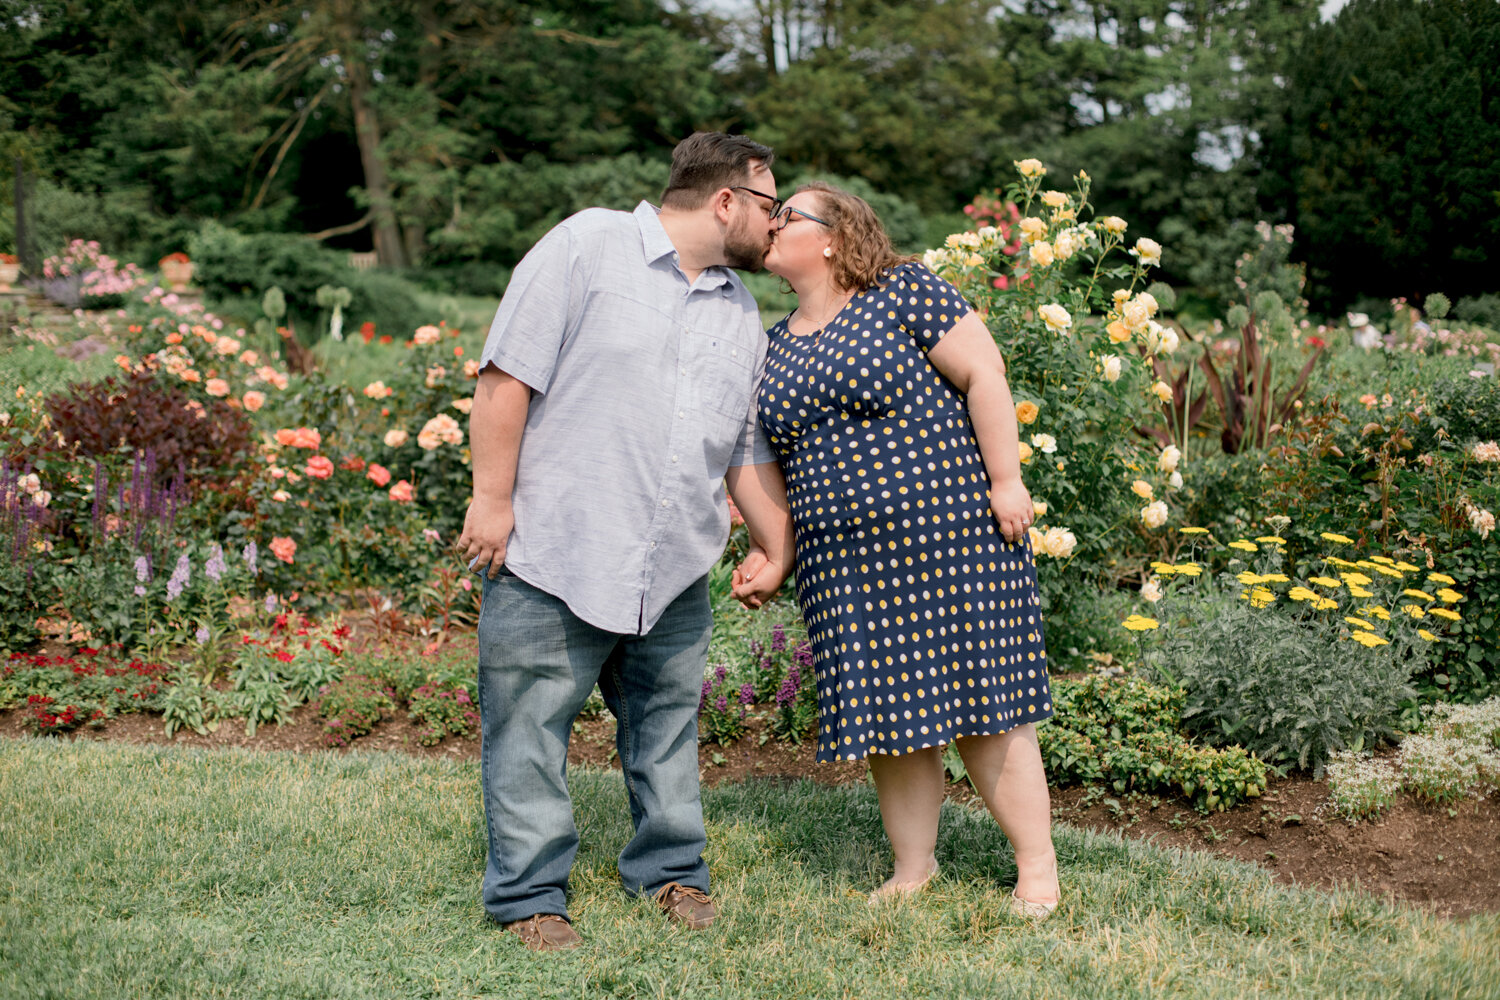 morris-arboretum-chestnut-hill-garden-engagement-session-philadelphia-wedding-photography-9.jpg